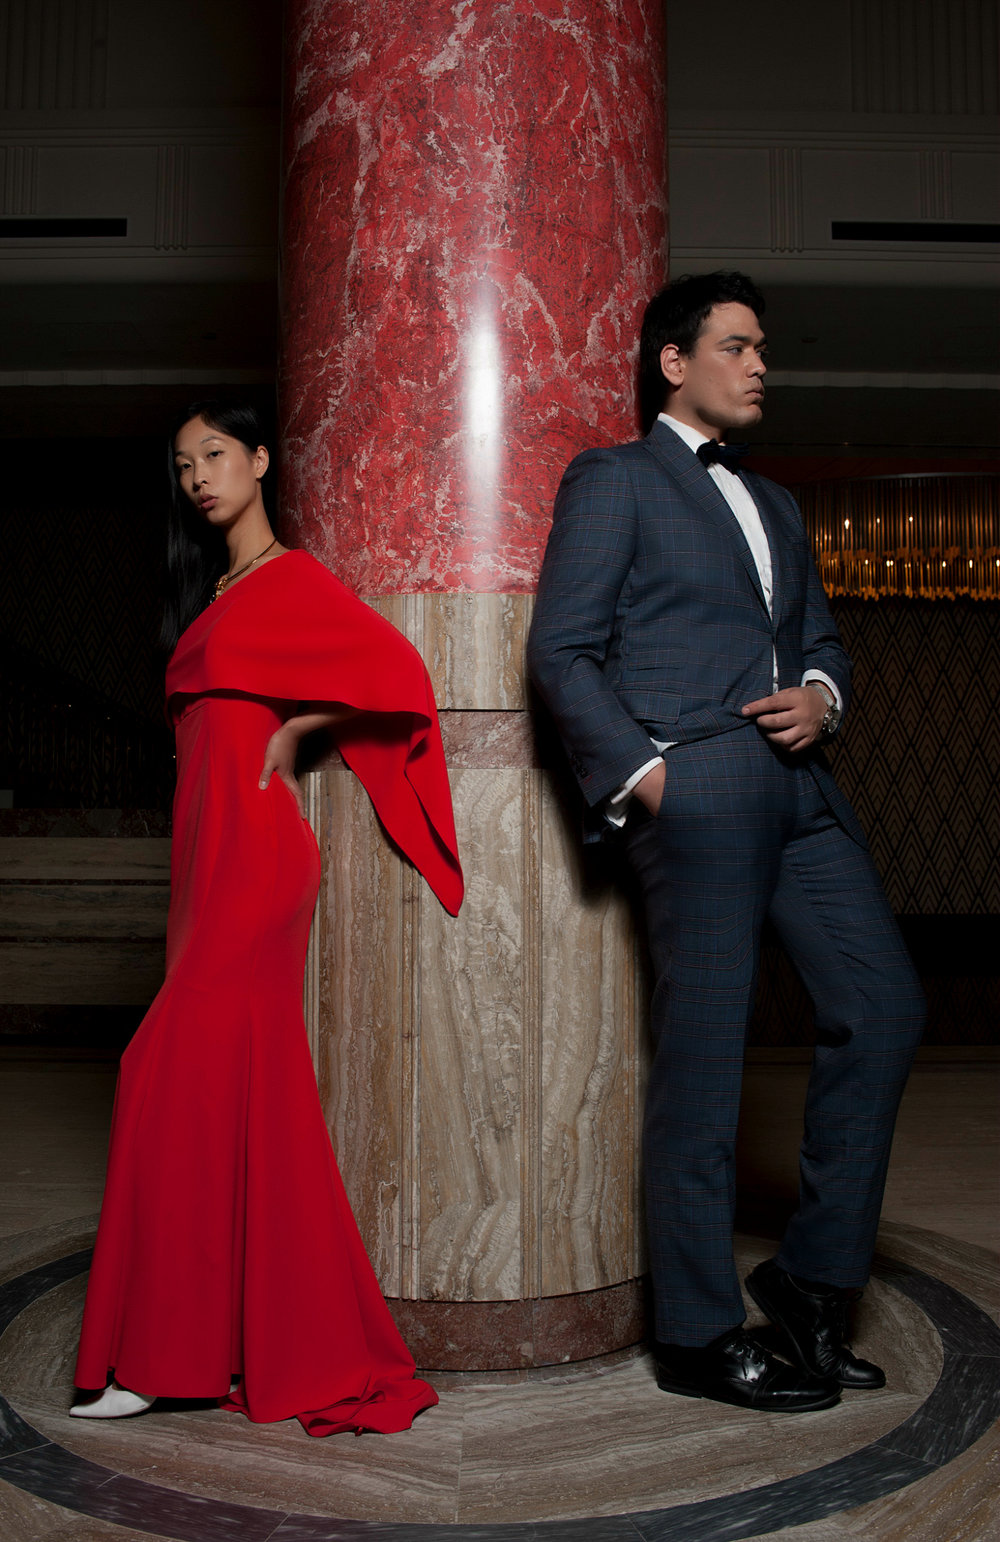 EditorialsWE'RE BACK AND READY TO SLAY! - We're back and ready to Slay 2017! Starting the year off in style in our first duo editorial for 2017 shot at the Primus Hotel Sydney by friend and photographer Mike Cooper.